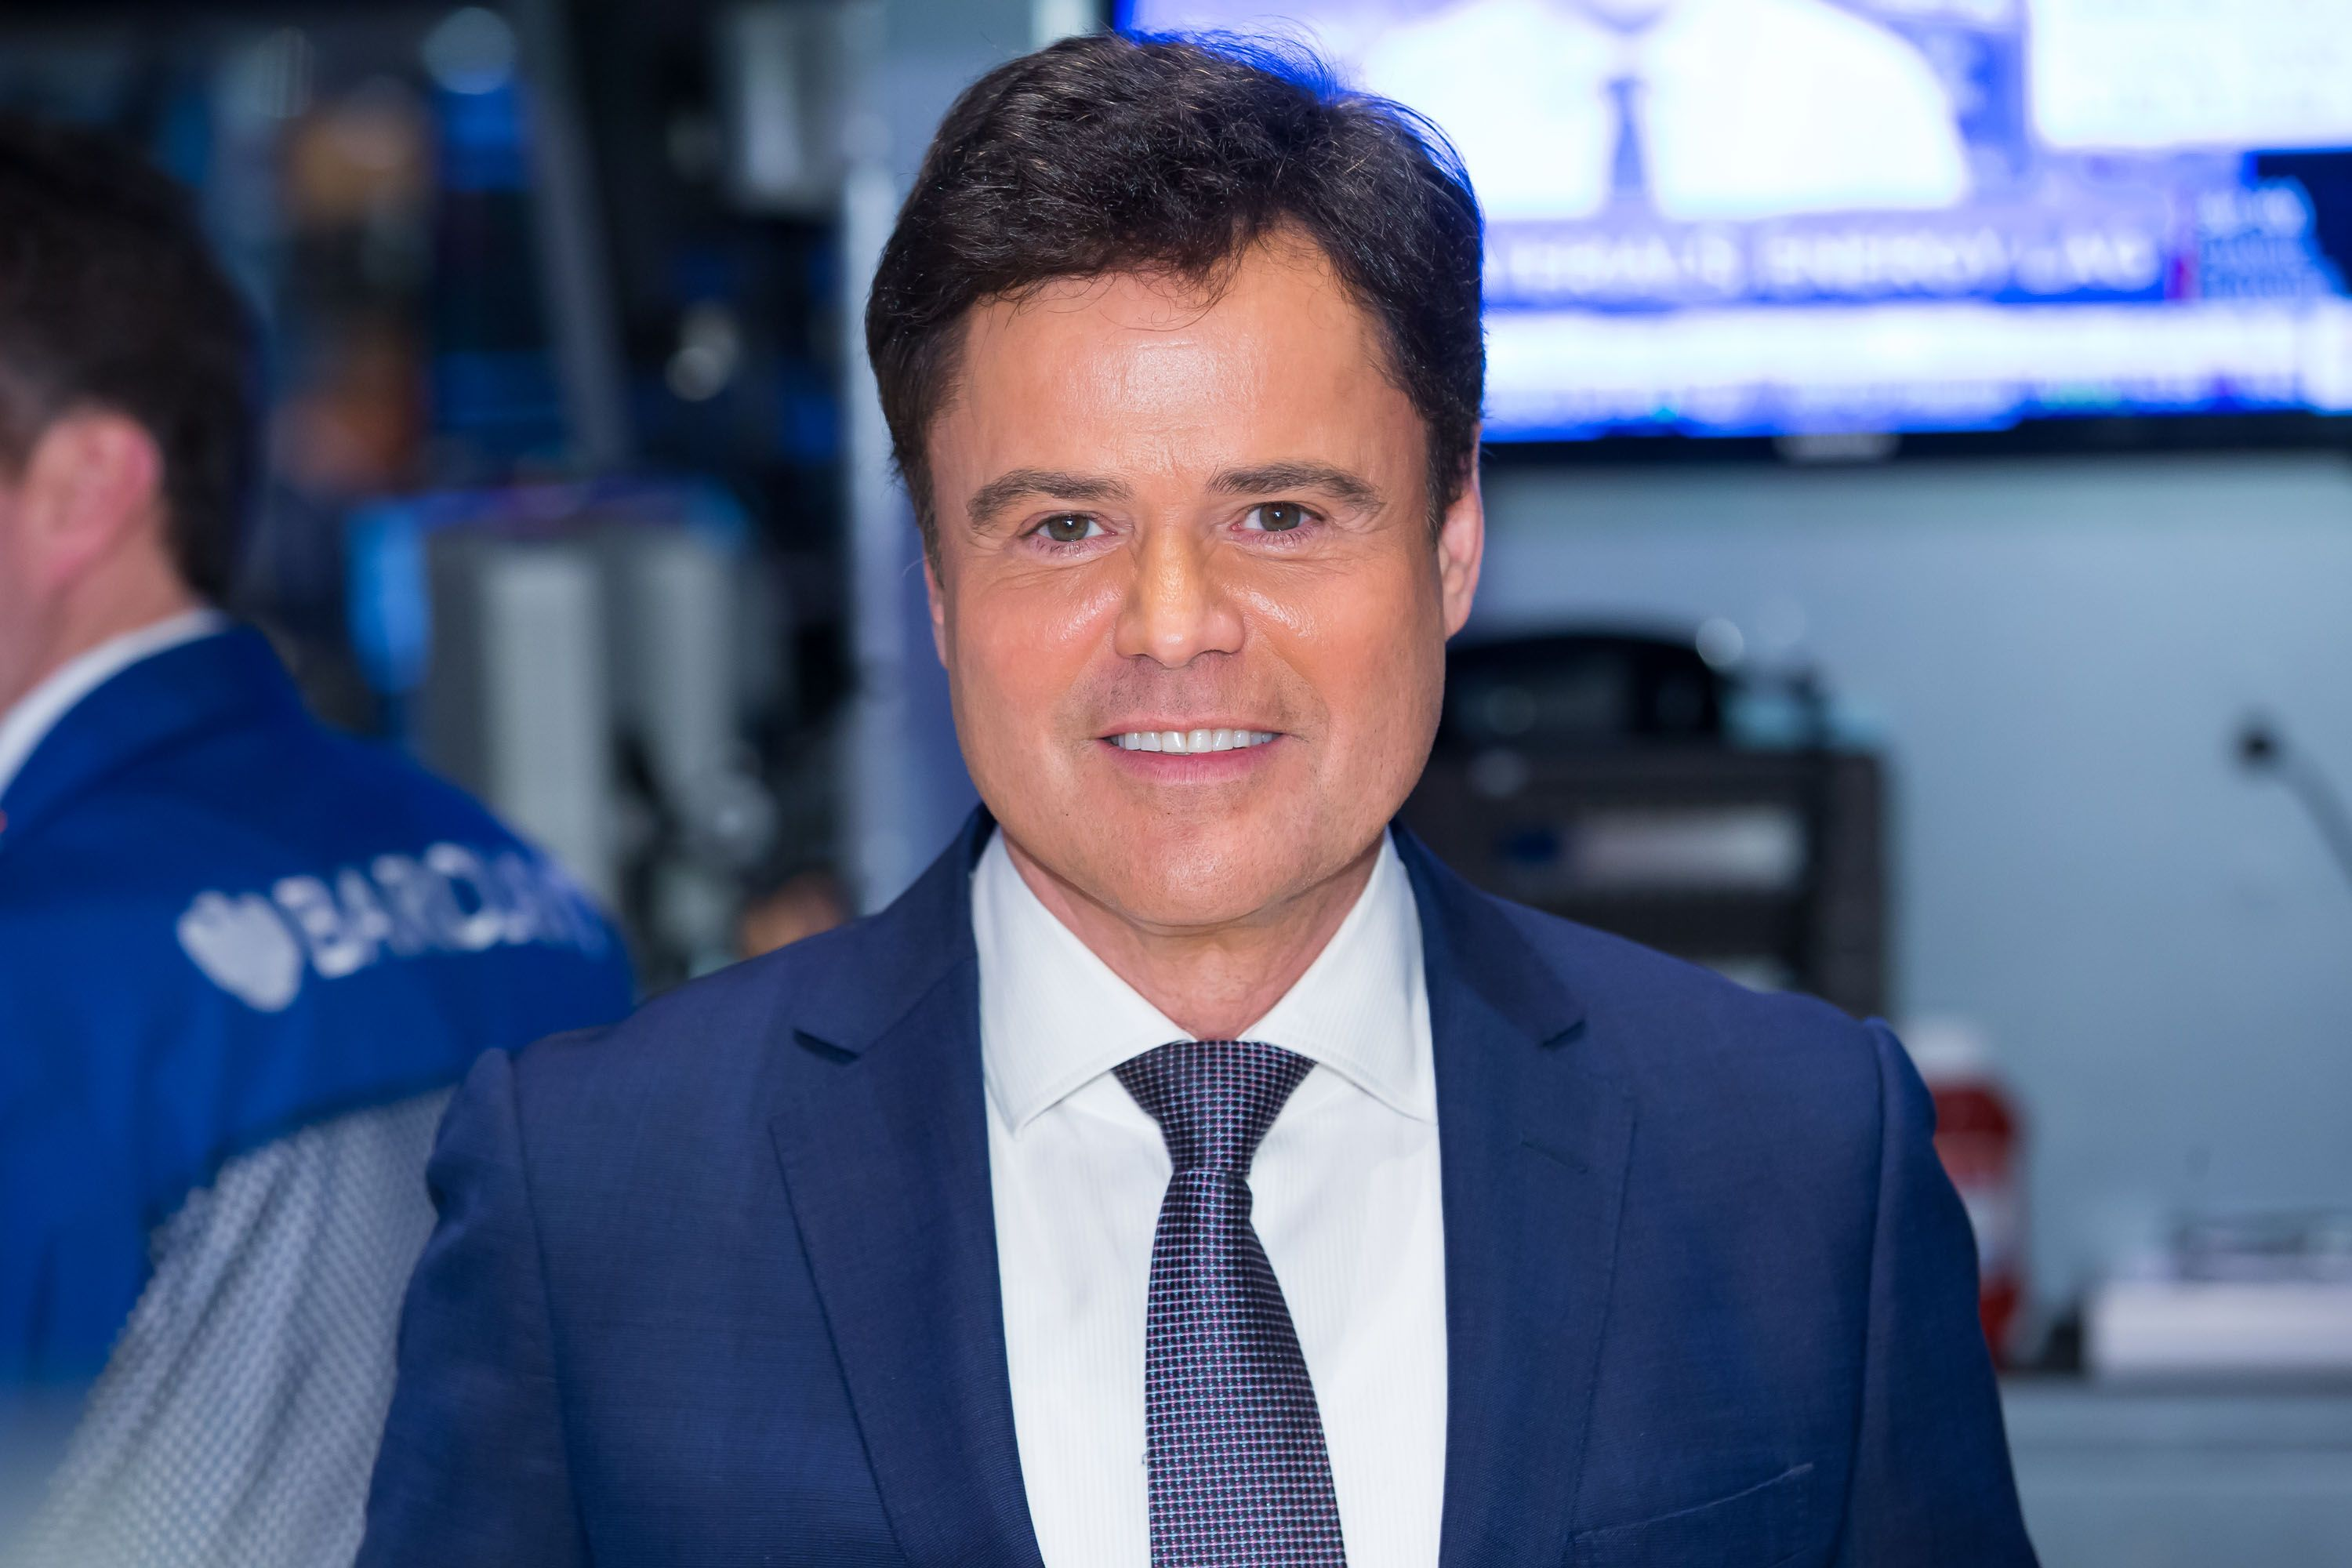 Donny Osmond rings the Closing Bell at New York Stock Exchange on January 13, 2015 in New York City   Photo:Ben Hider/Getty Images